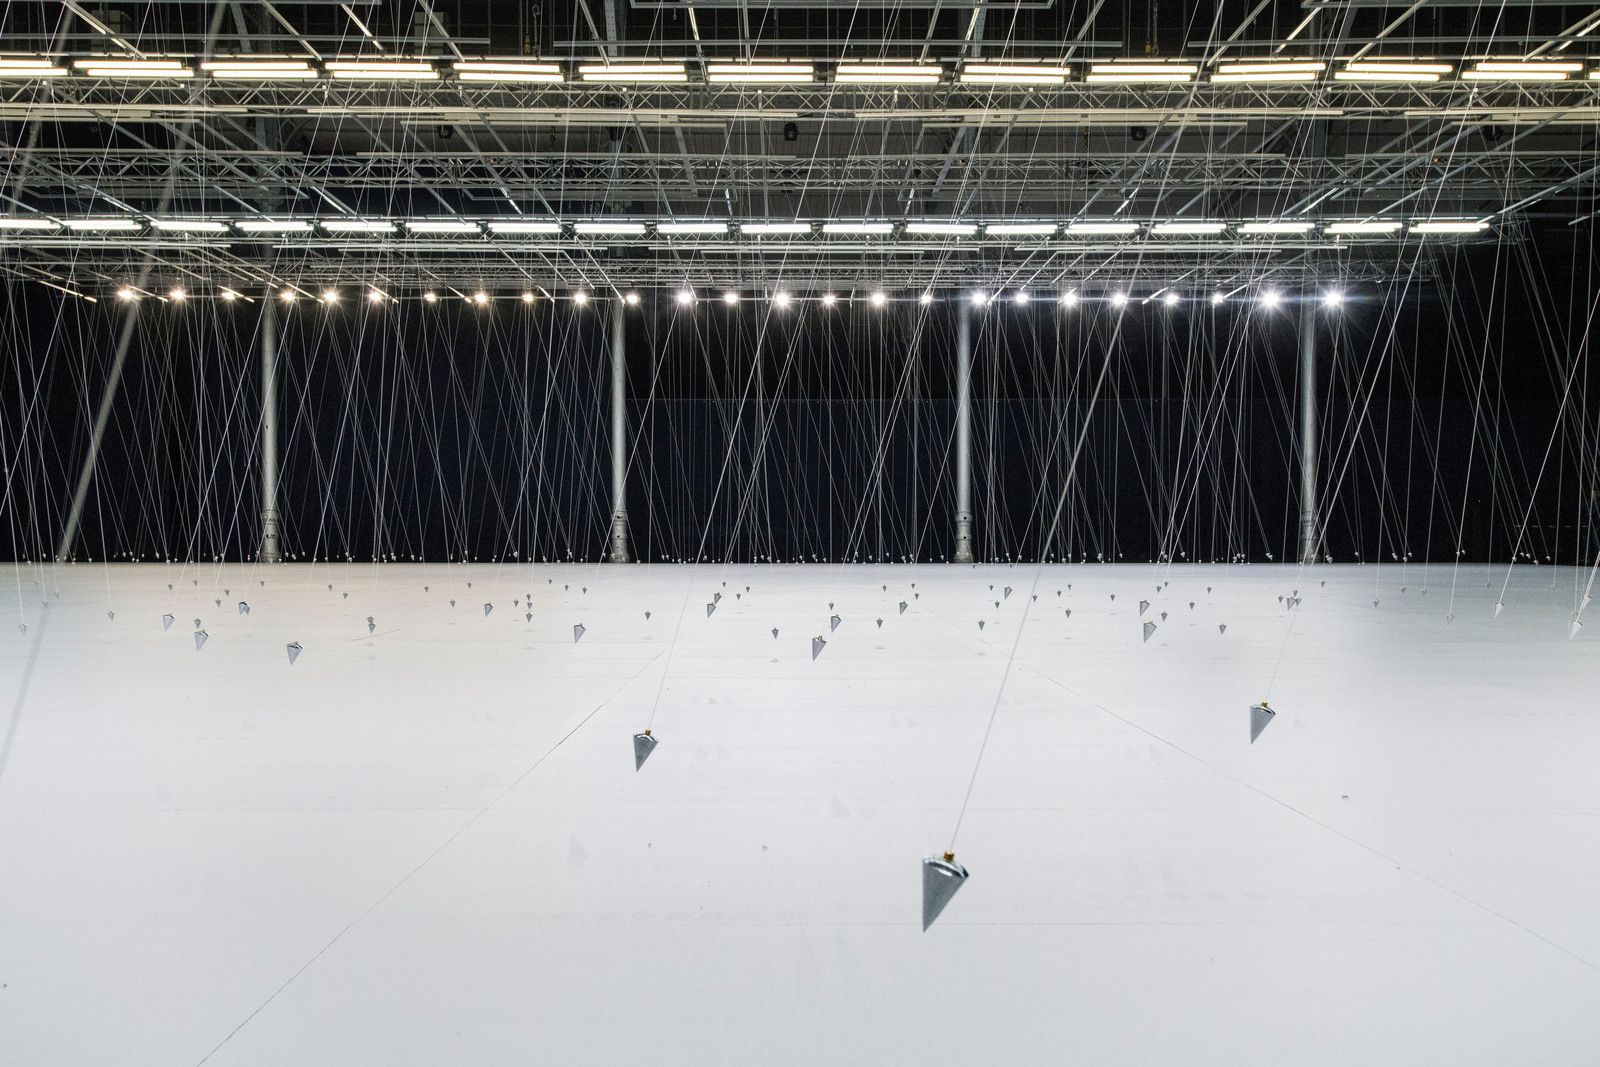 Nowhere and Everywhere at the Same Time, No2. 2013 - Artwork © William Forsythe. Photography ©Martin Argyroglo, Courtesy Gagosian